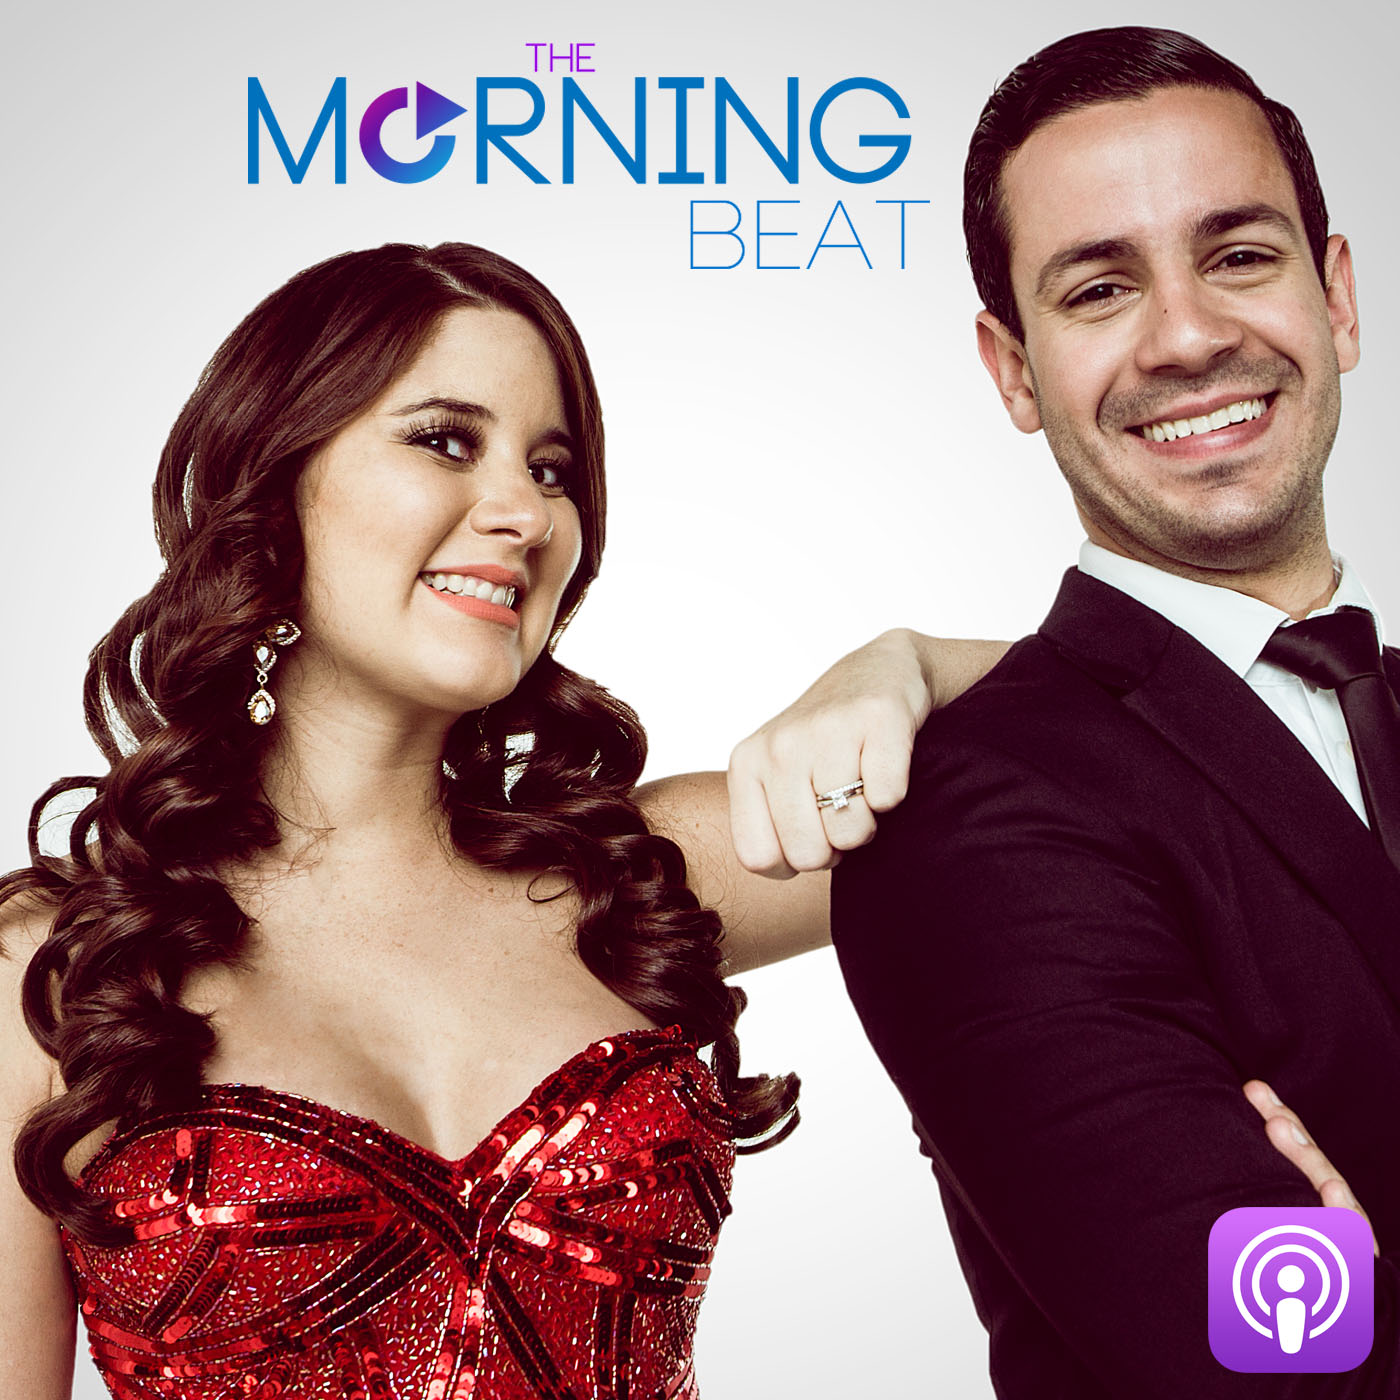 The MorningBeat's Podcast